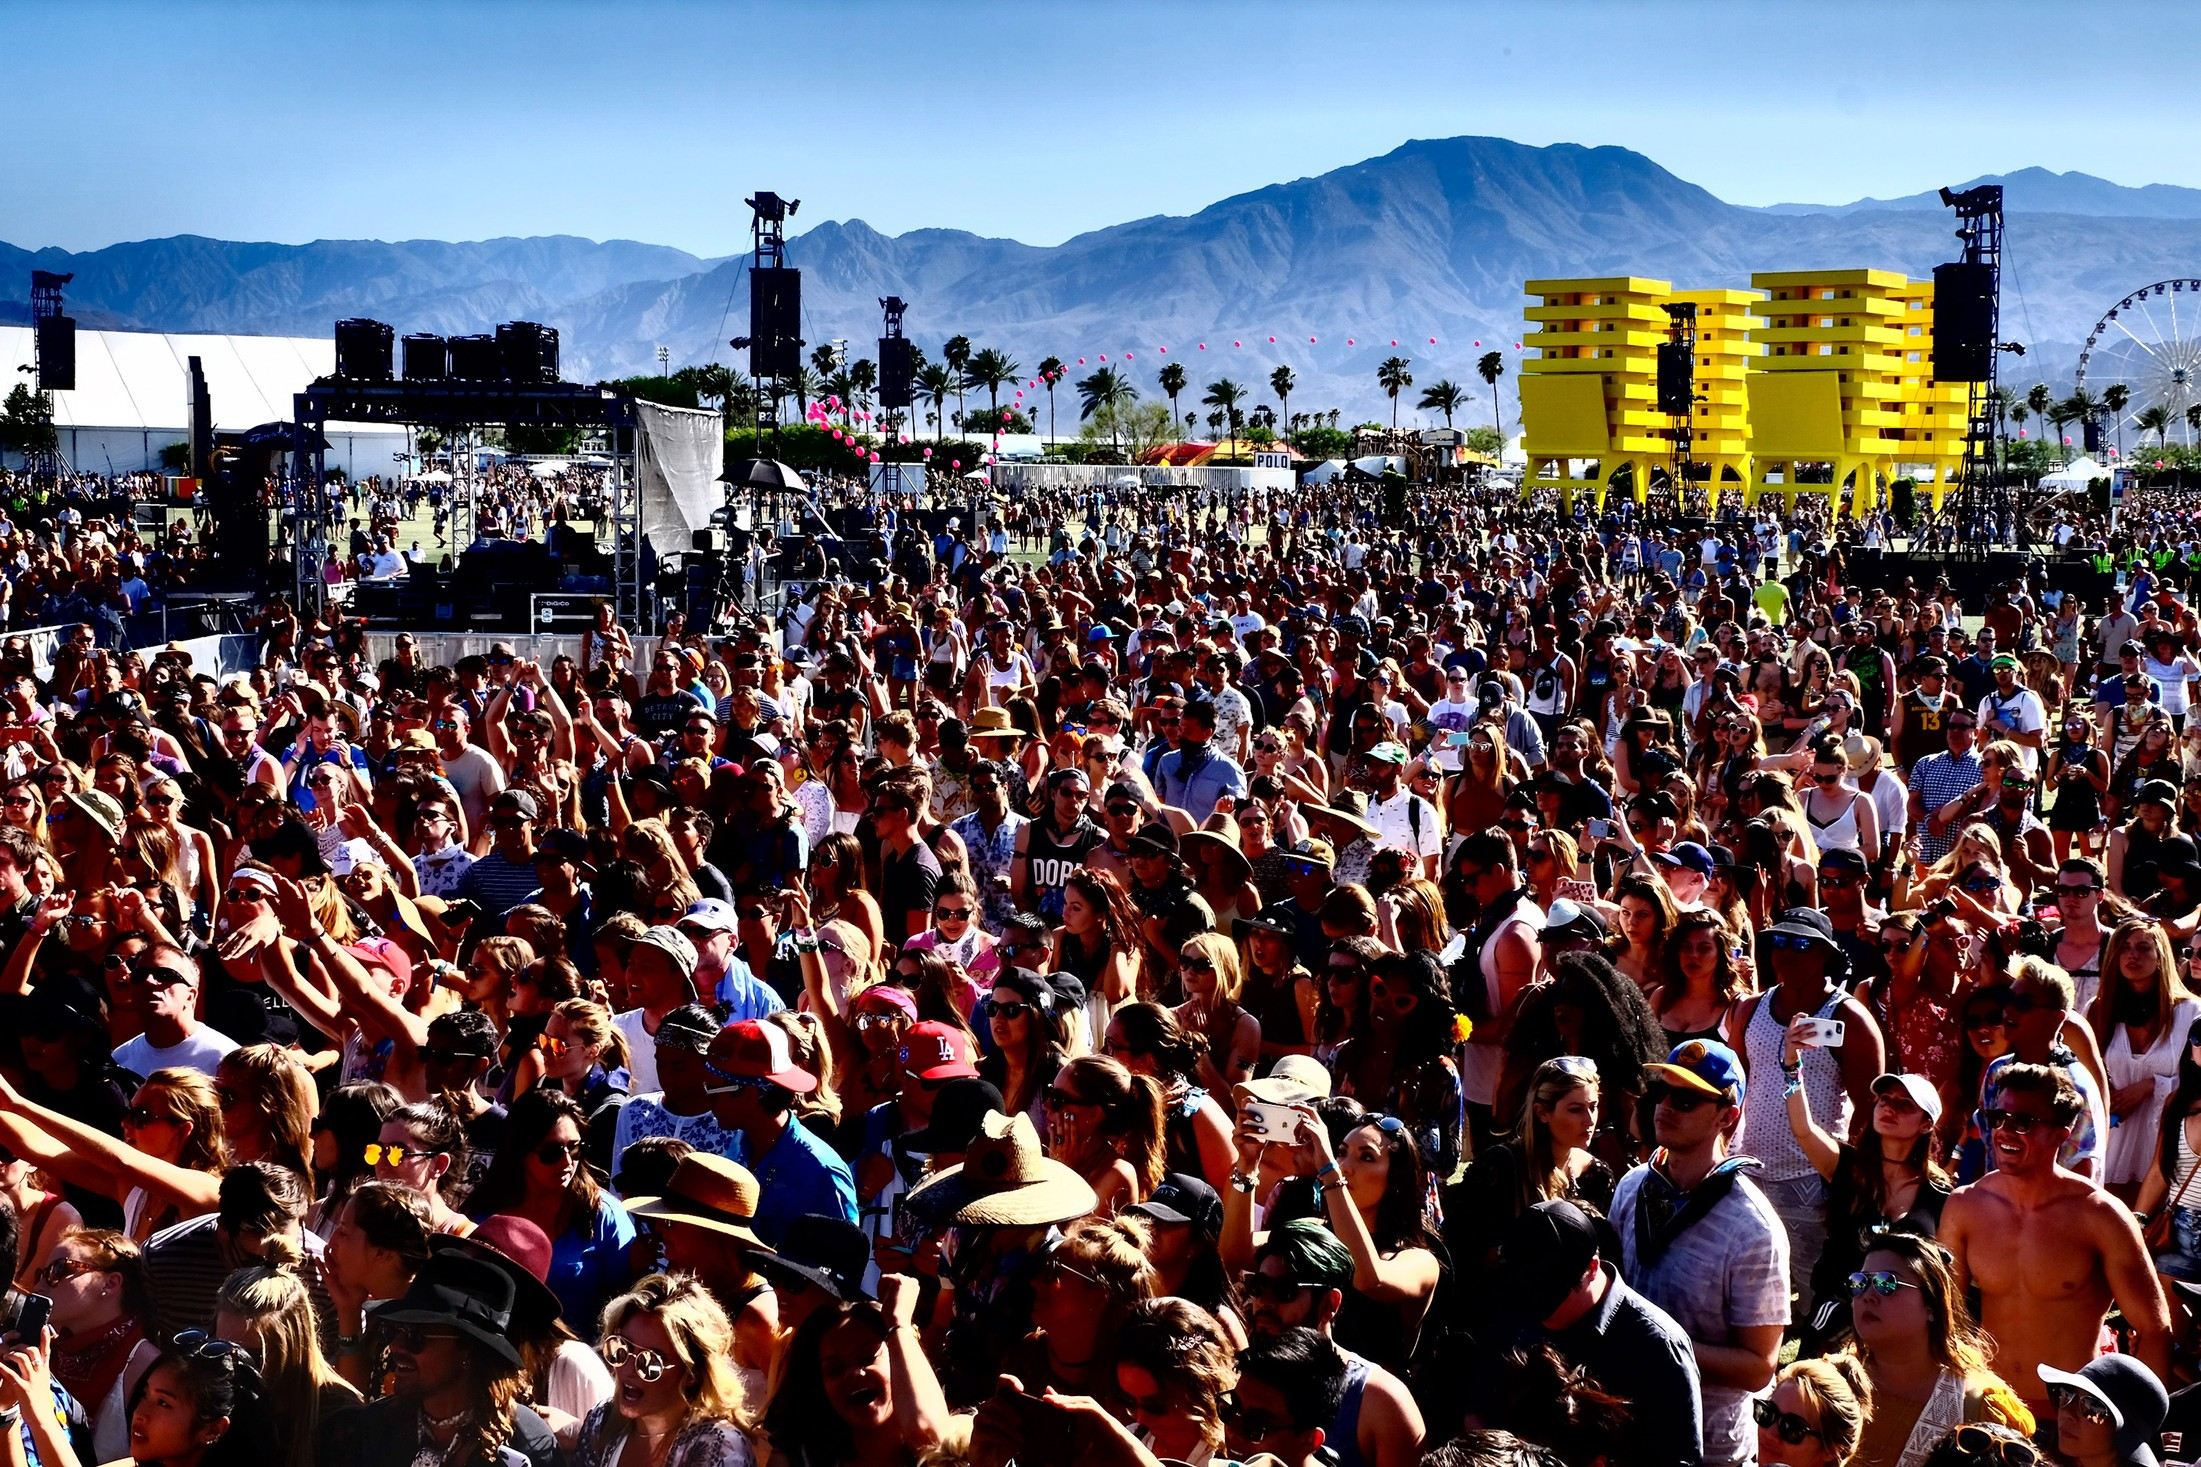 Music Fans attend day 2 of the 2016 Coachella Valley Music & Arts Festival Weekend 1 at the Empire Polo Club on April 16, 2016 in Indio, Calif.